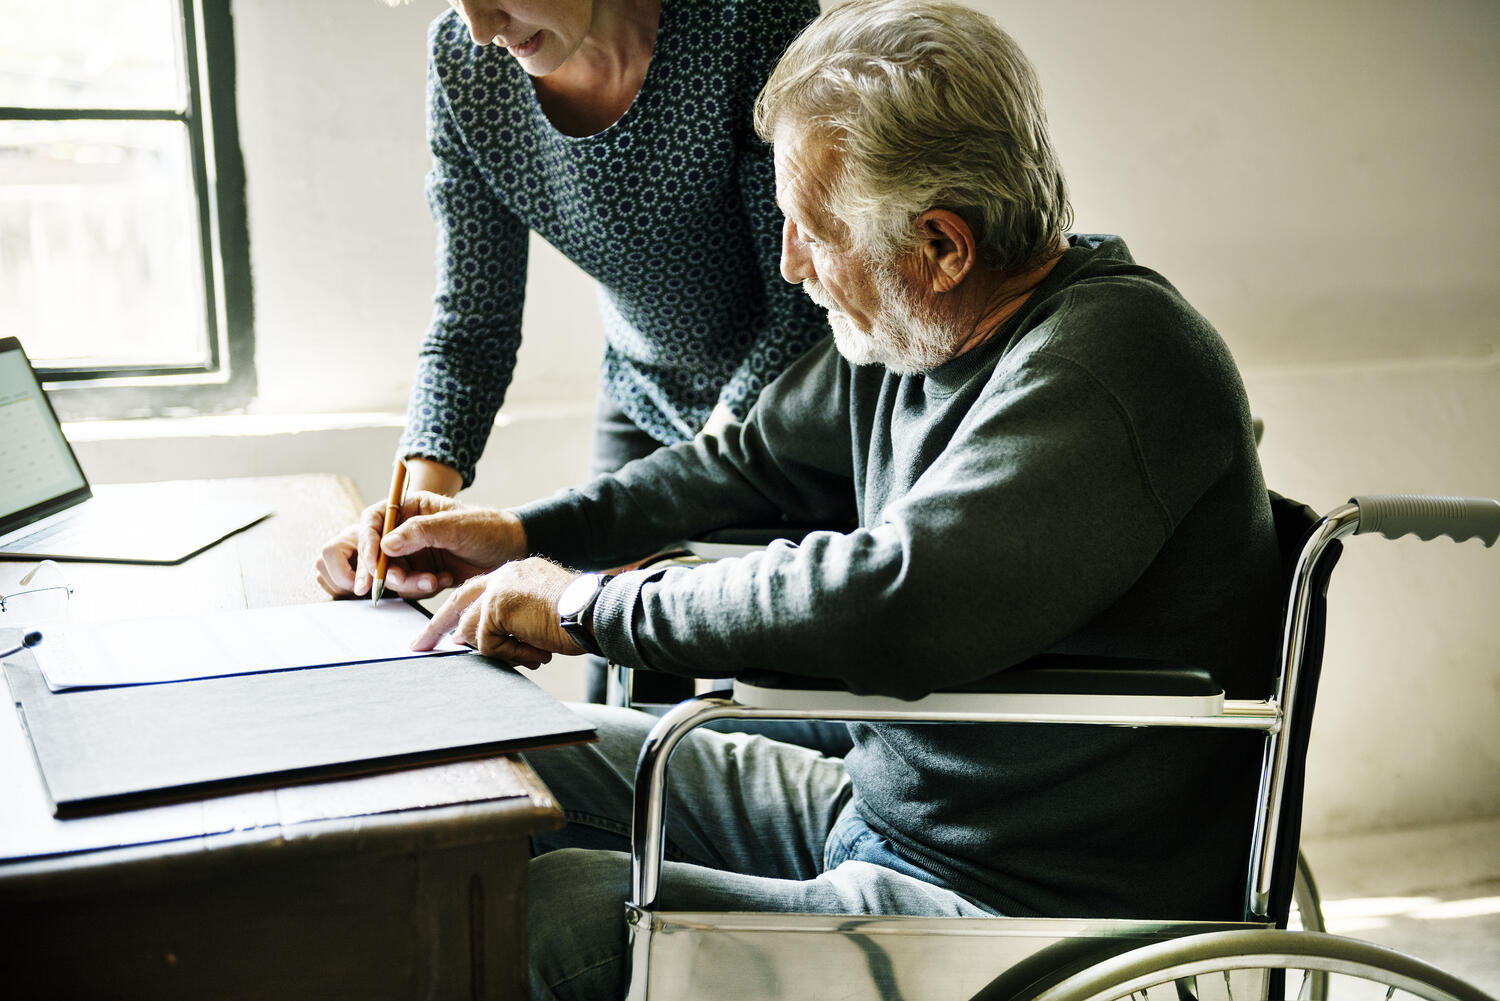 Case manager assists employee in a wheelchair who needs an ADA accommodation